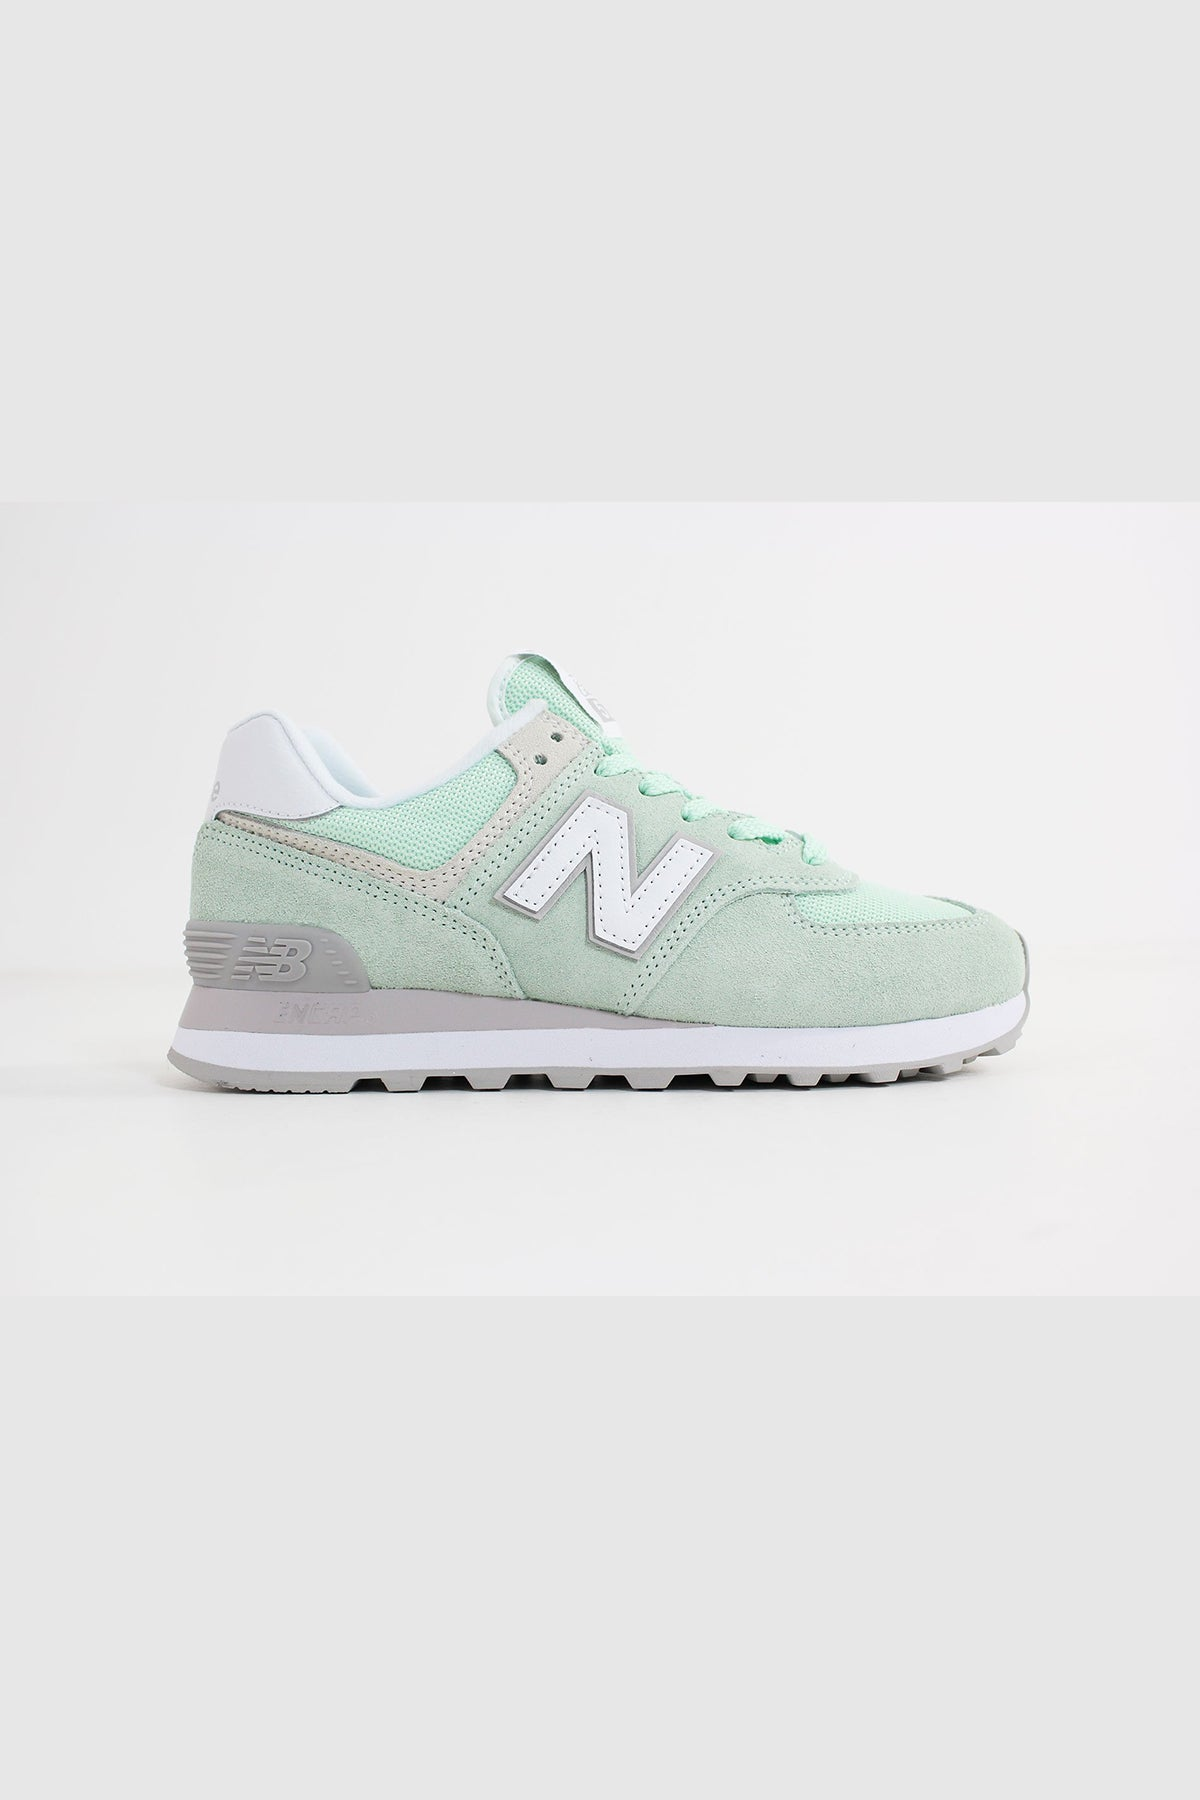 0c005c85fd6 New Balance - WL574ESM Women (SeafoamGreen) - Sneakerworld